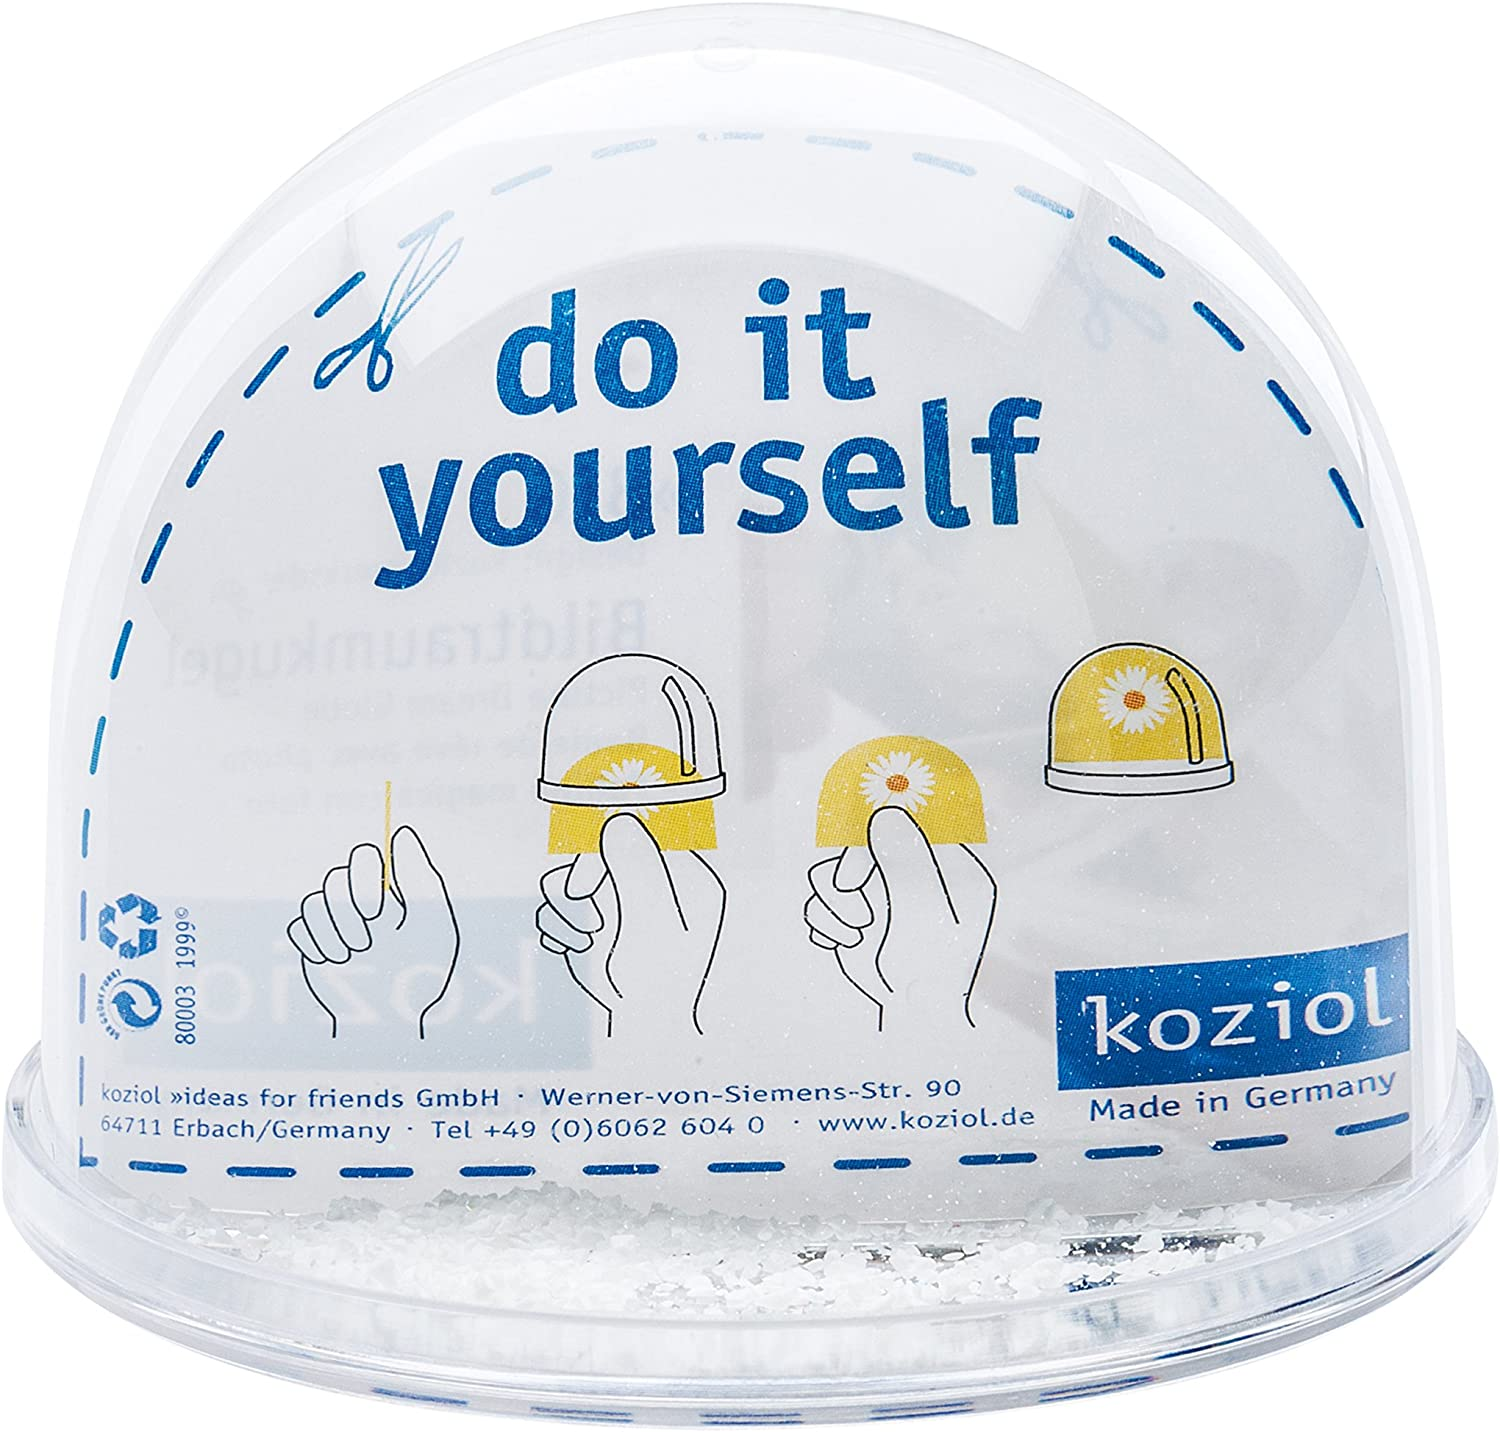 Koziol 6222101 Boule /à Neige avec Photo Big 9x9x7,5 cm Transparent Plastique